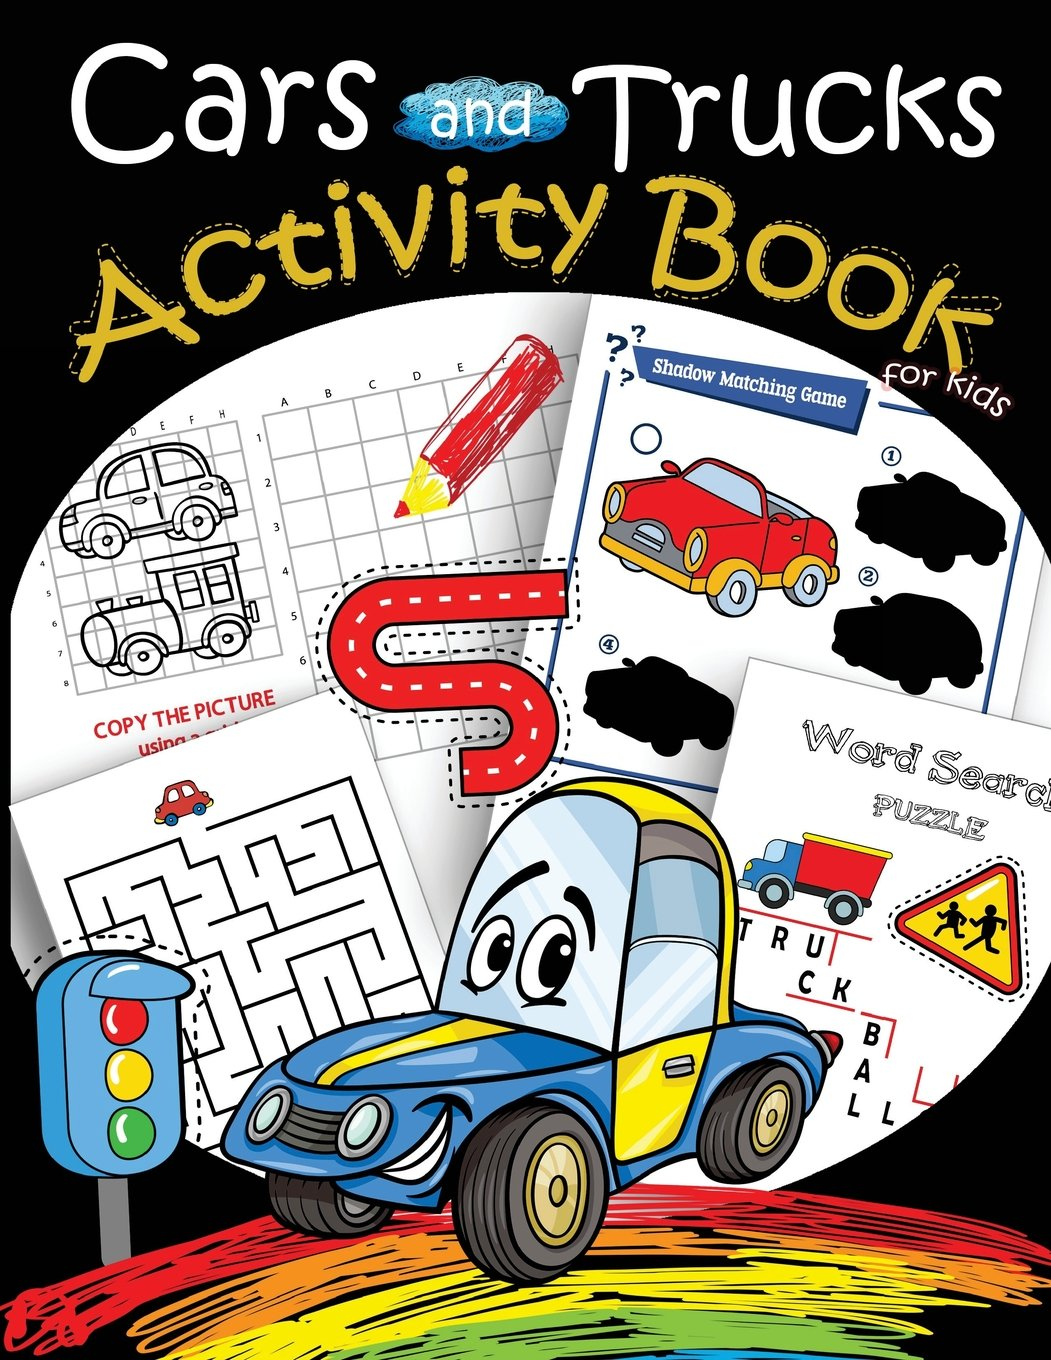 Cars and Trucks Activity Book for kids: Mazes, Coloring, Dot to Dot,Draw using the grid,shadow matching game,Word Search Puzzle (Activity Book for Kids Ages 4-8, 5-12) (Volume 2)